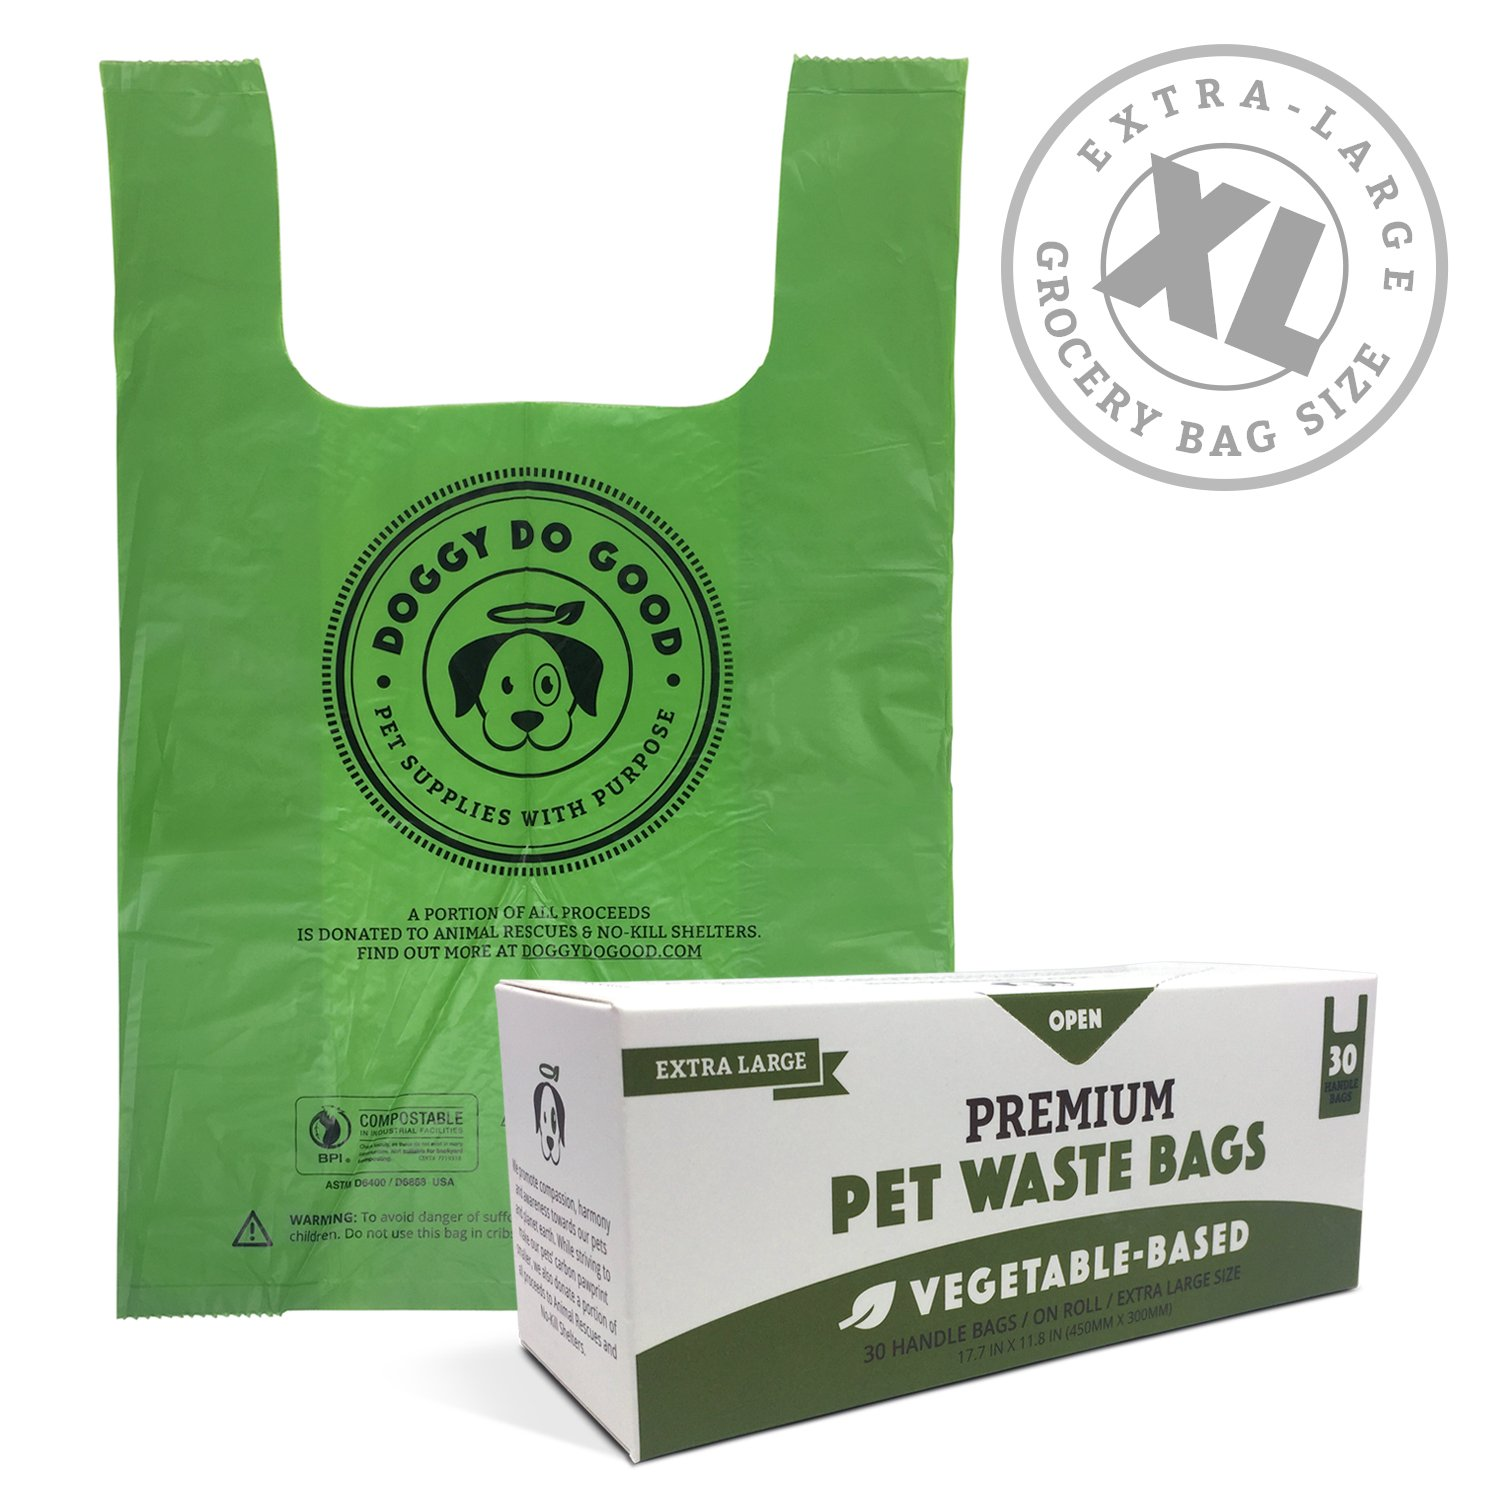 Biodegradable Poop Bags | XL Cat Litter X Large Dog Waste Bags Vegetable Based Eco Friendly Premium Thickness Leak Proof Easy Tie Handles Supports Rescues